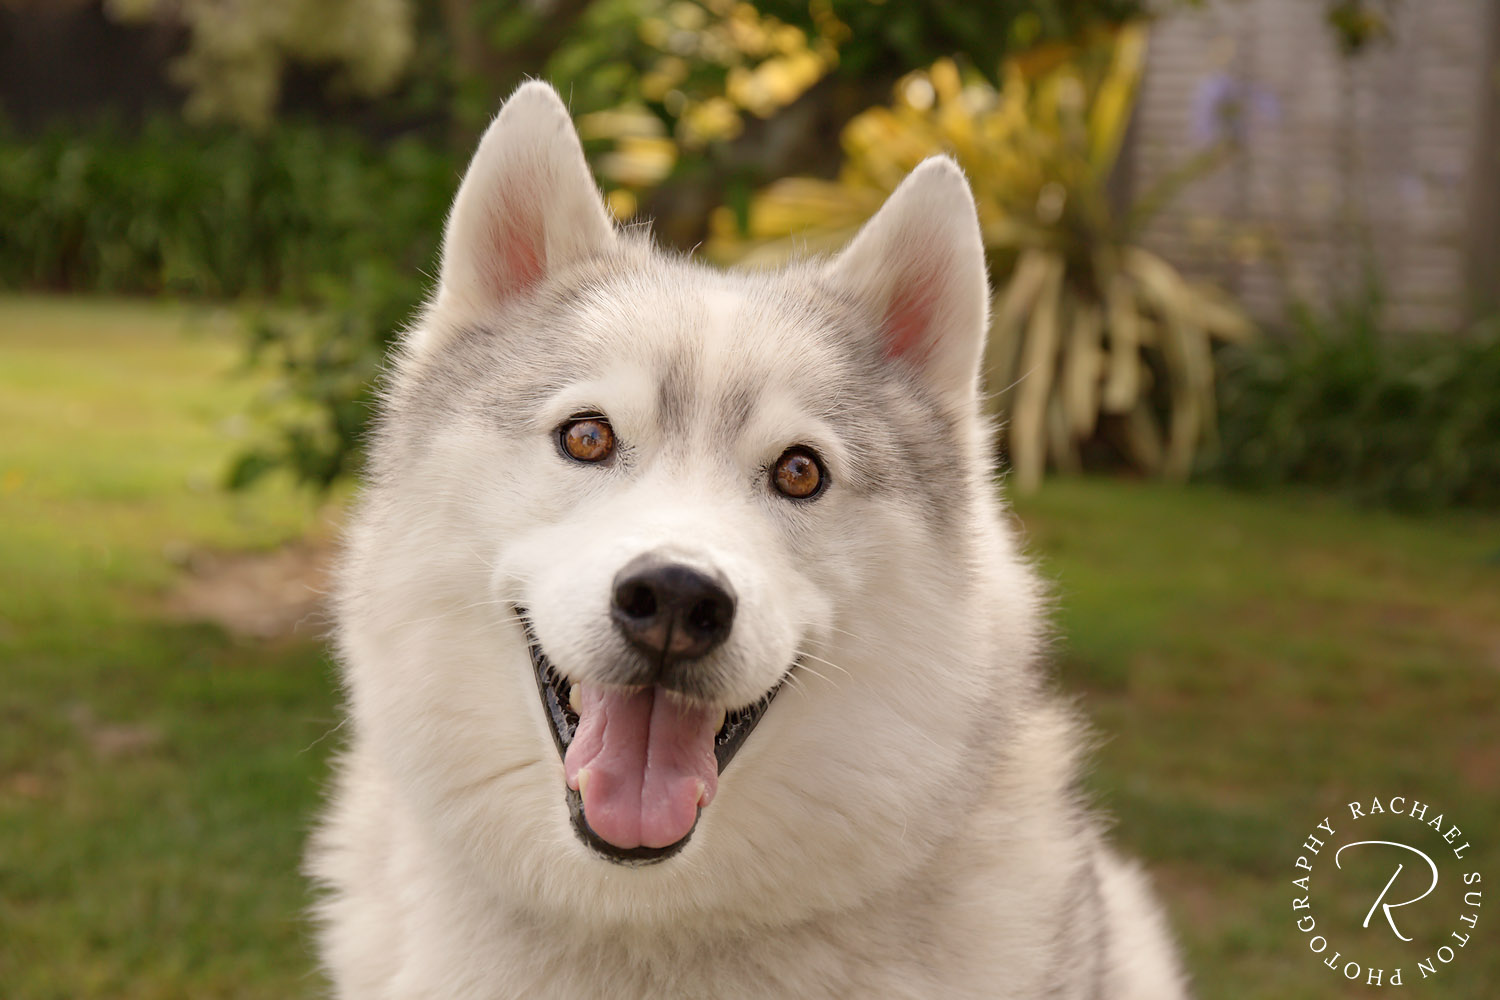 Pet photo, Husky, Siberian Husky, dog looking at camera